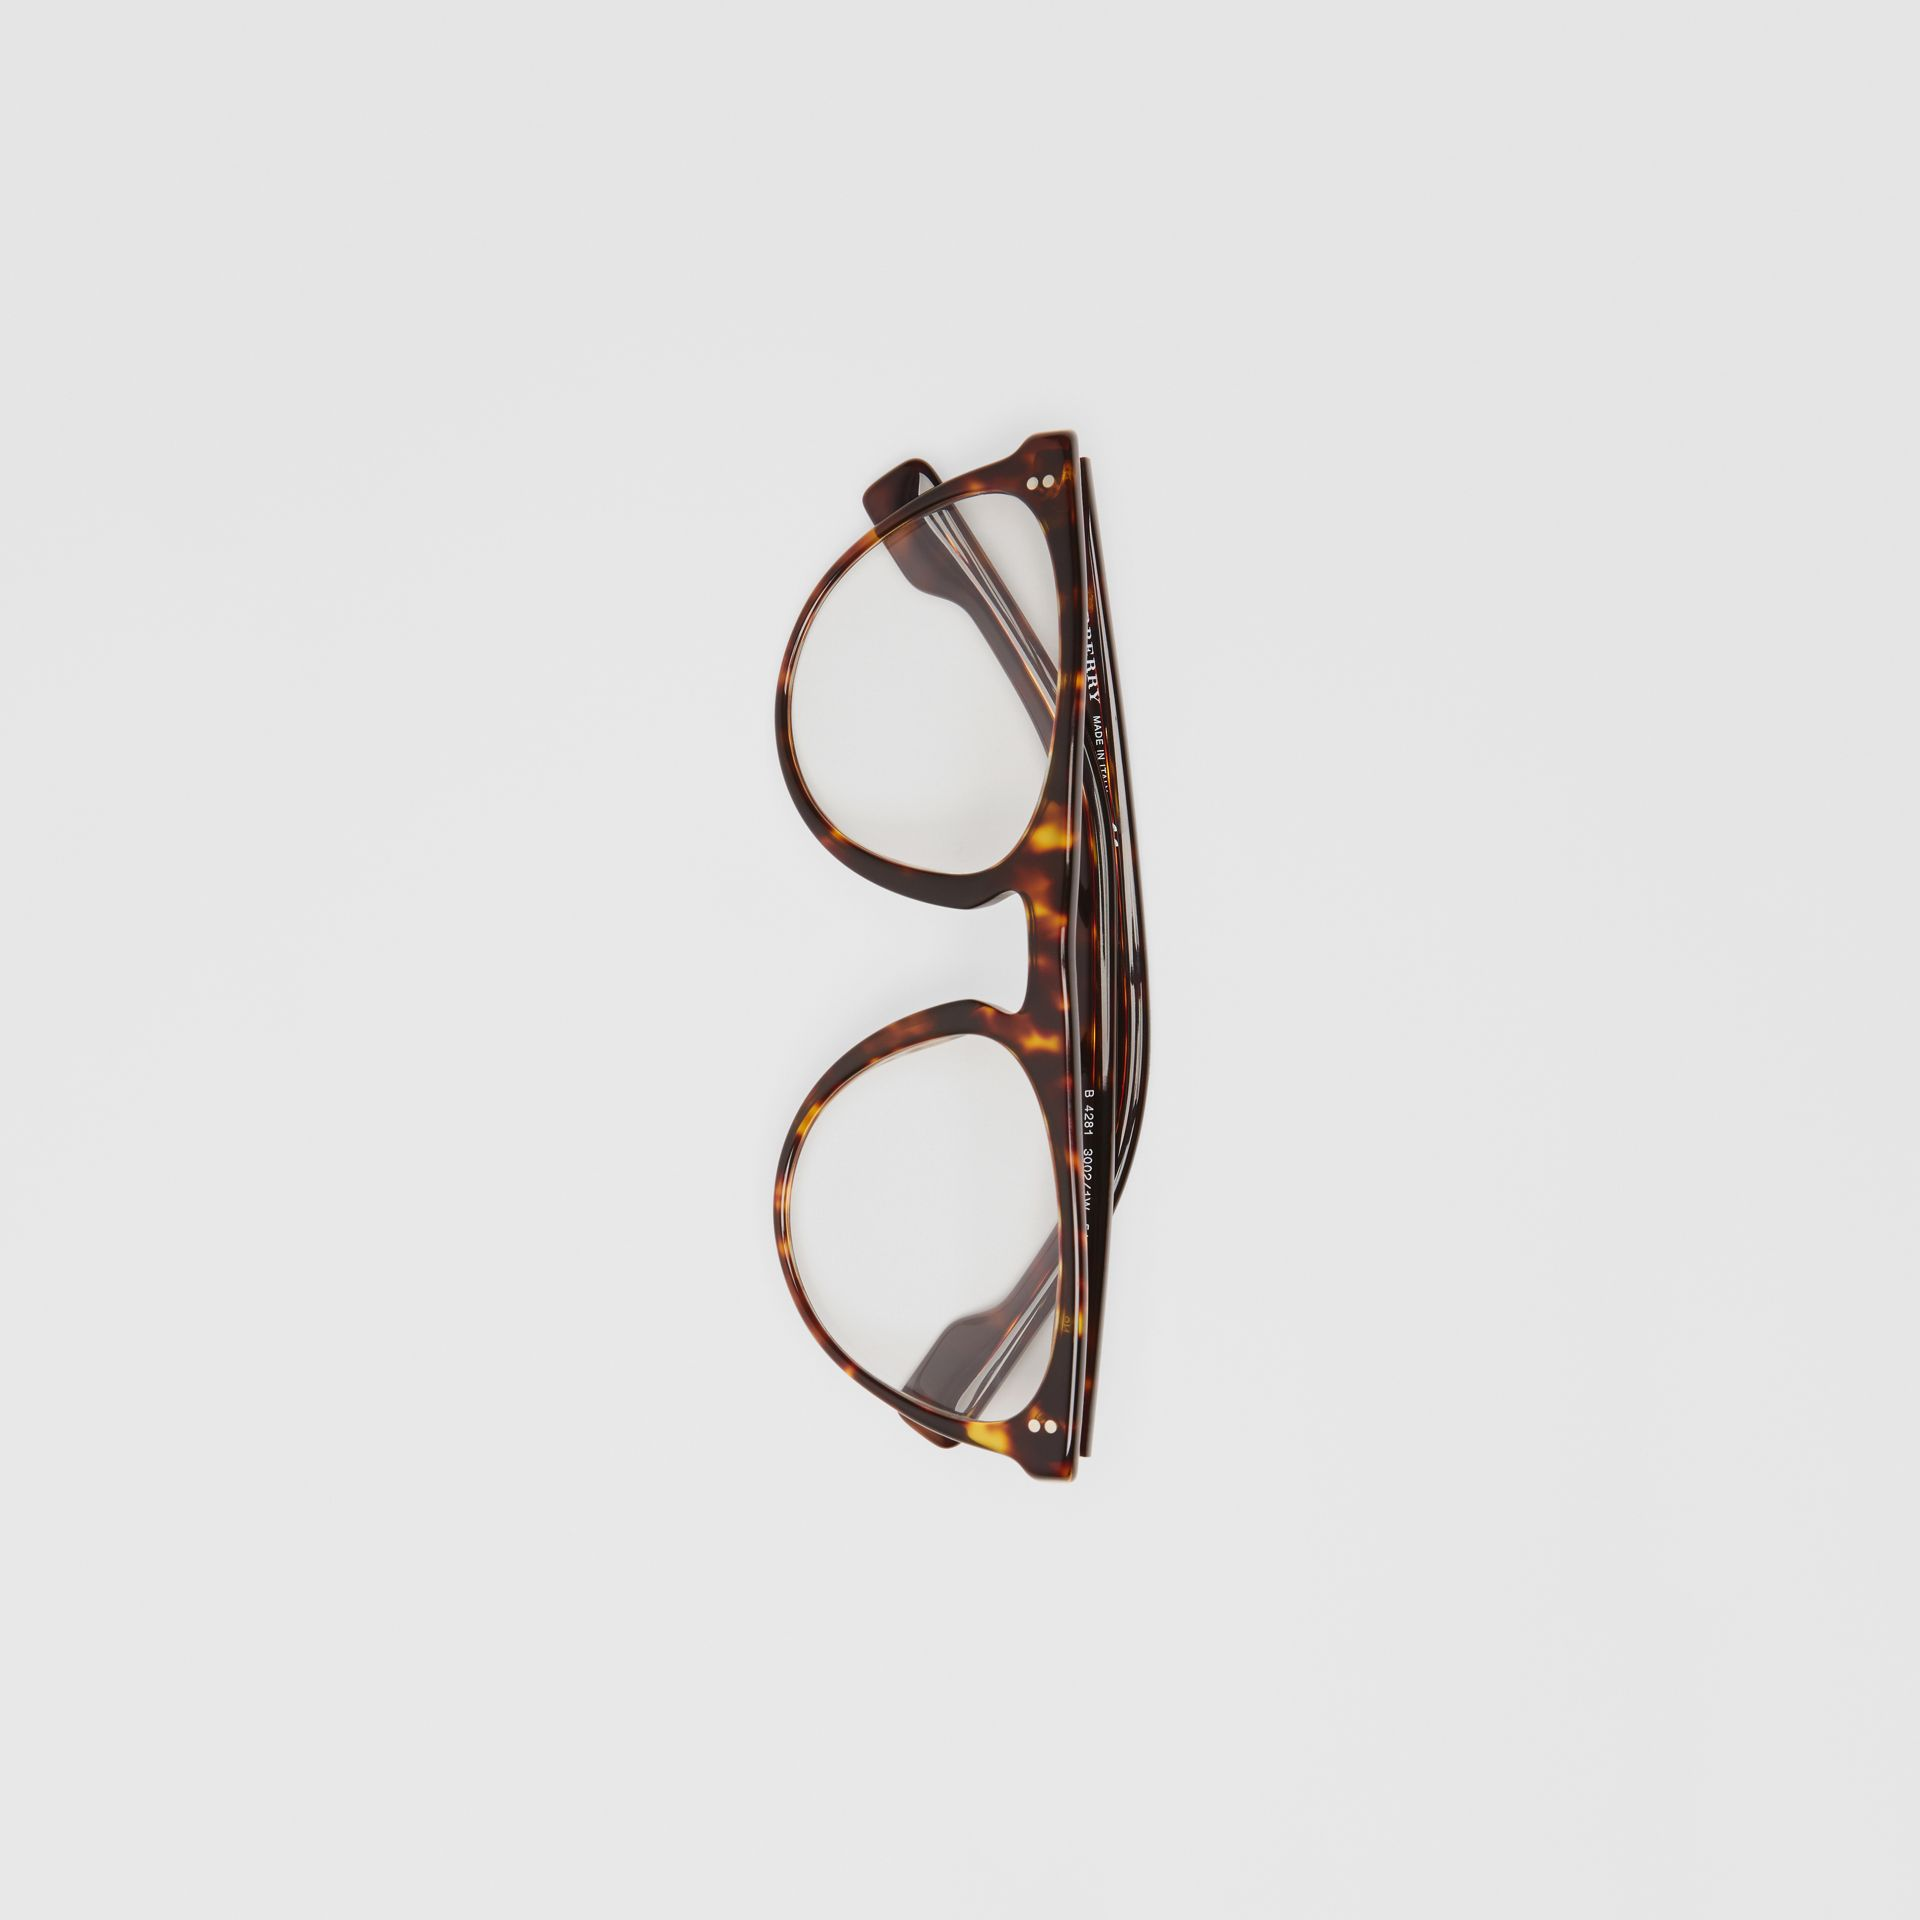 Keyhole D-shaped Optical Frames in Tortoise Shell - Men | Burberry Hong Kong - gallery image 3